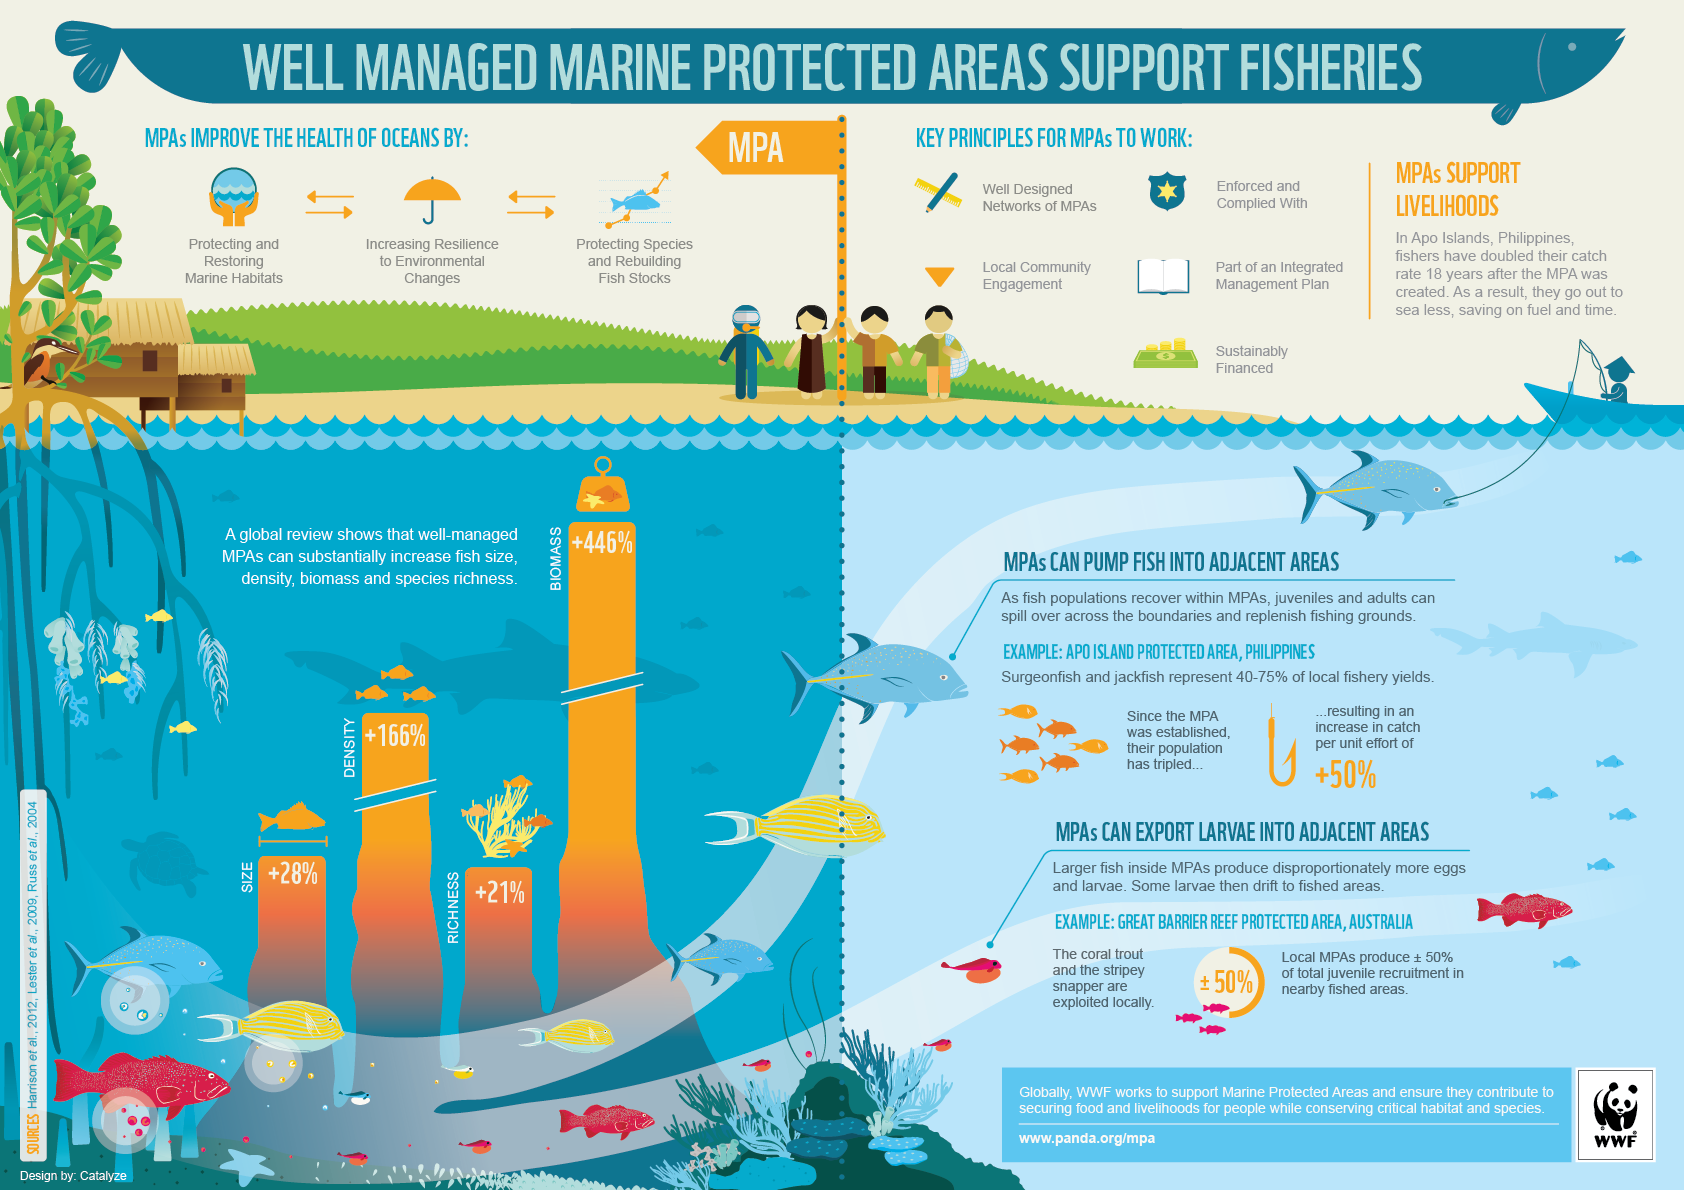 fisheries_benefits_marine_protected_areas_wwf_infographic-1